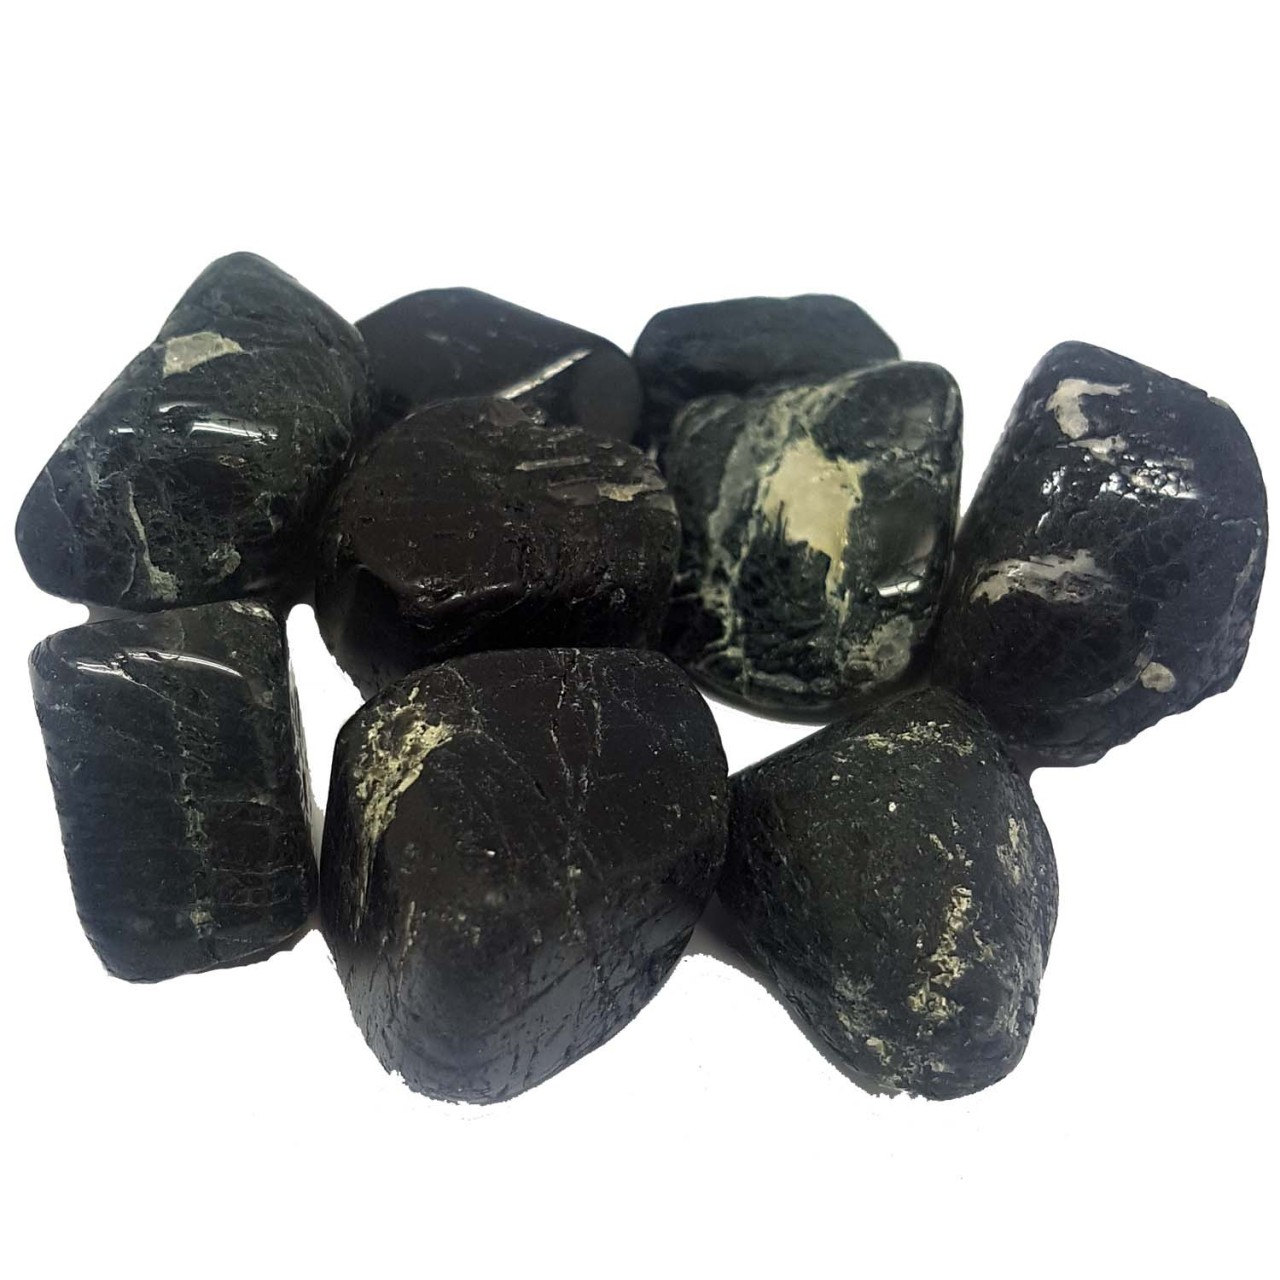 Tumbled Stones - BLACK TOURMALINE